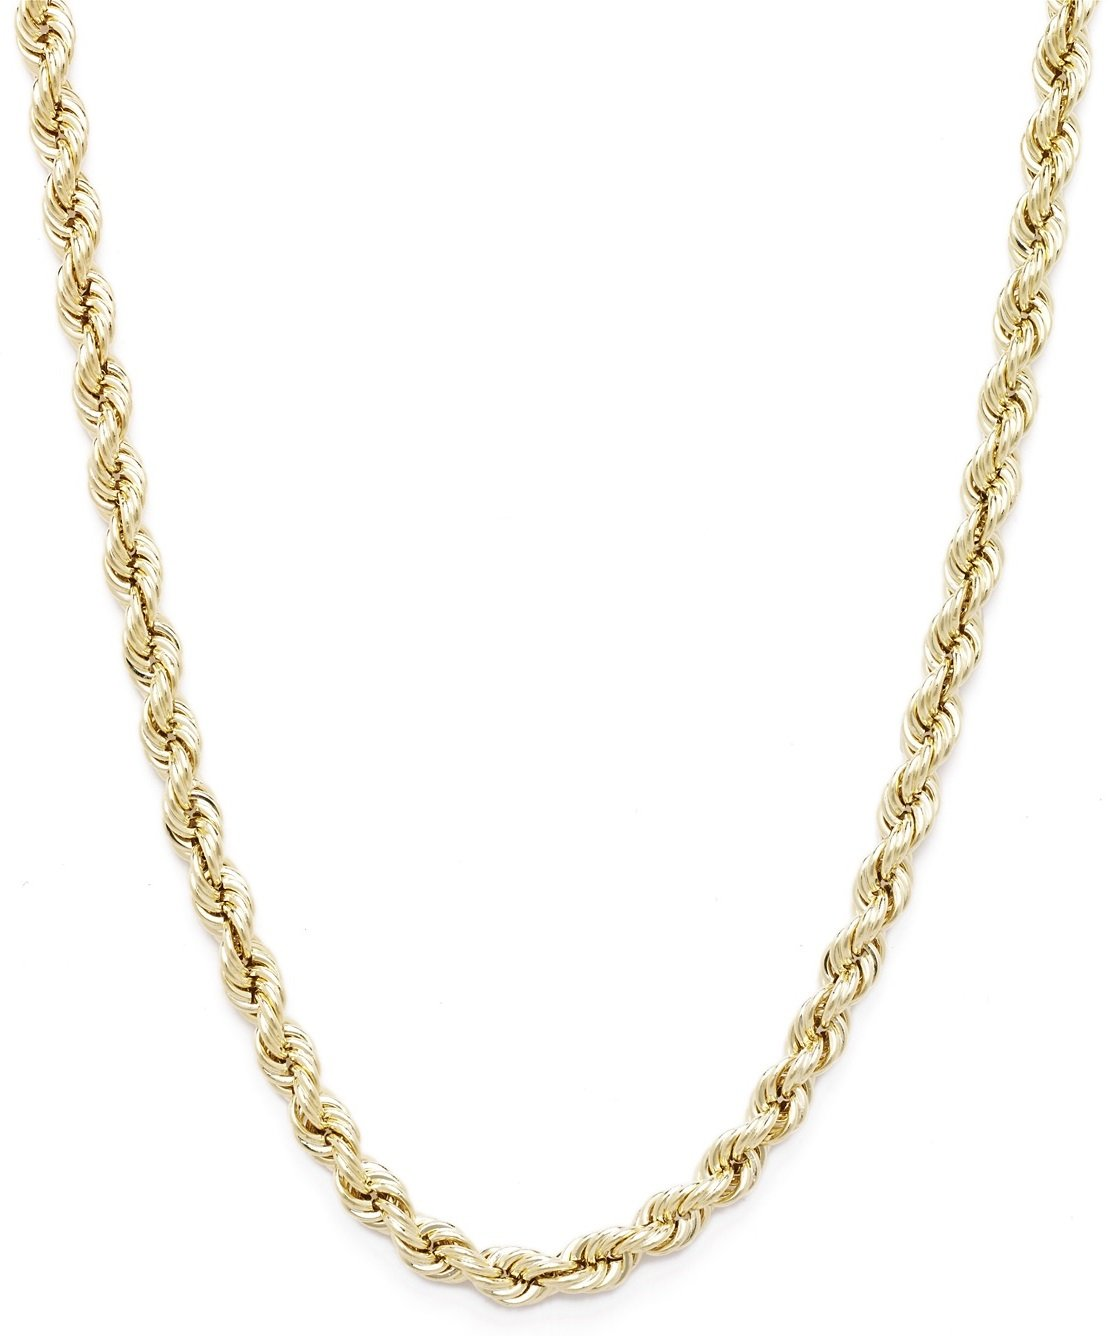 18 Inch 10k Yellow Gold Hollow Rope Chain Necklace with Lobster Claw Clasp for Women and Men, 2mm